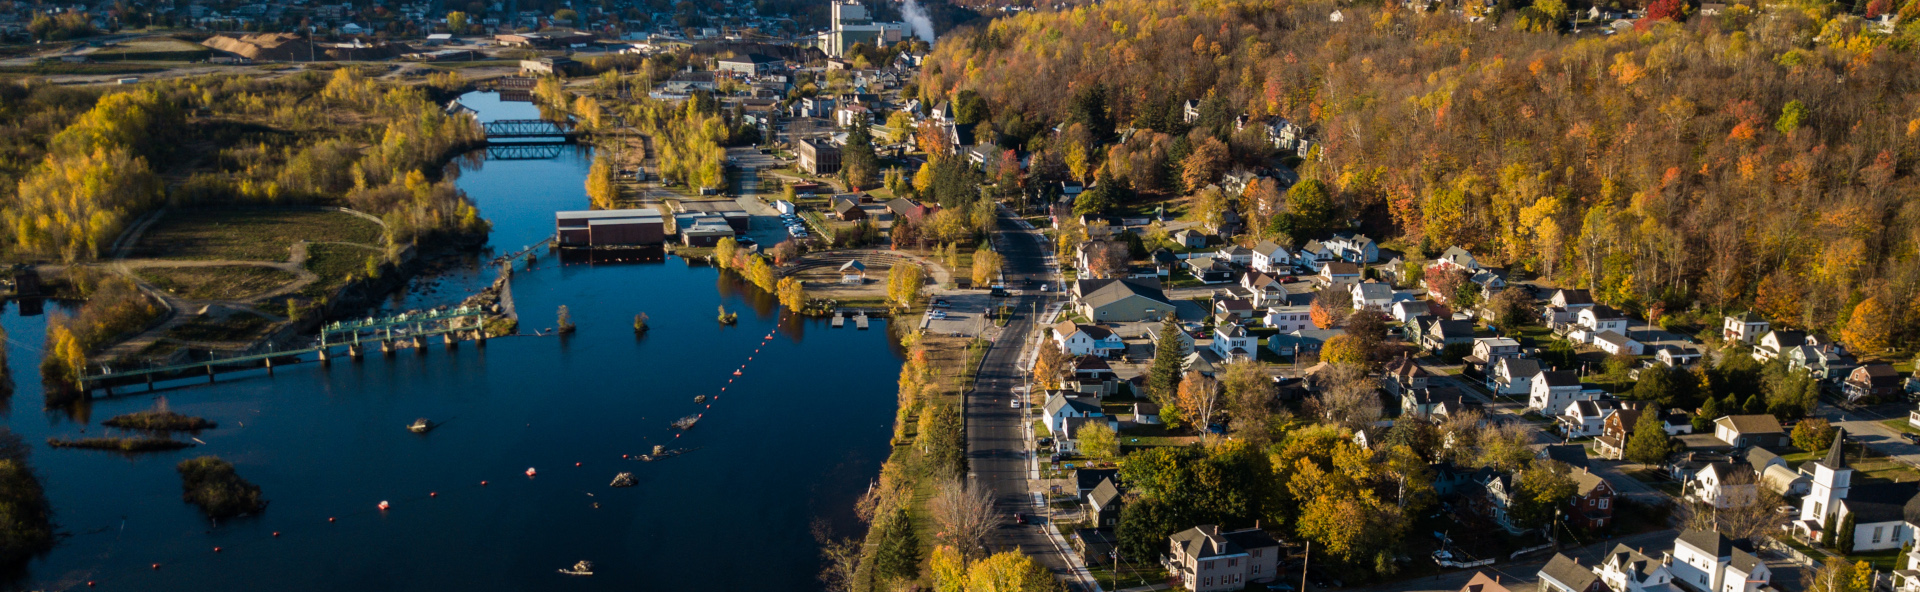 Berlin, New Hampshire - A place like this | Business View Magazine